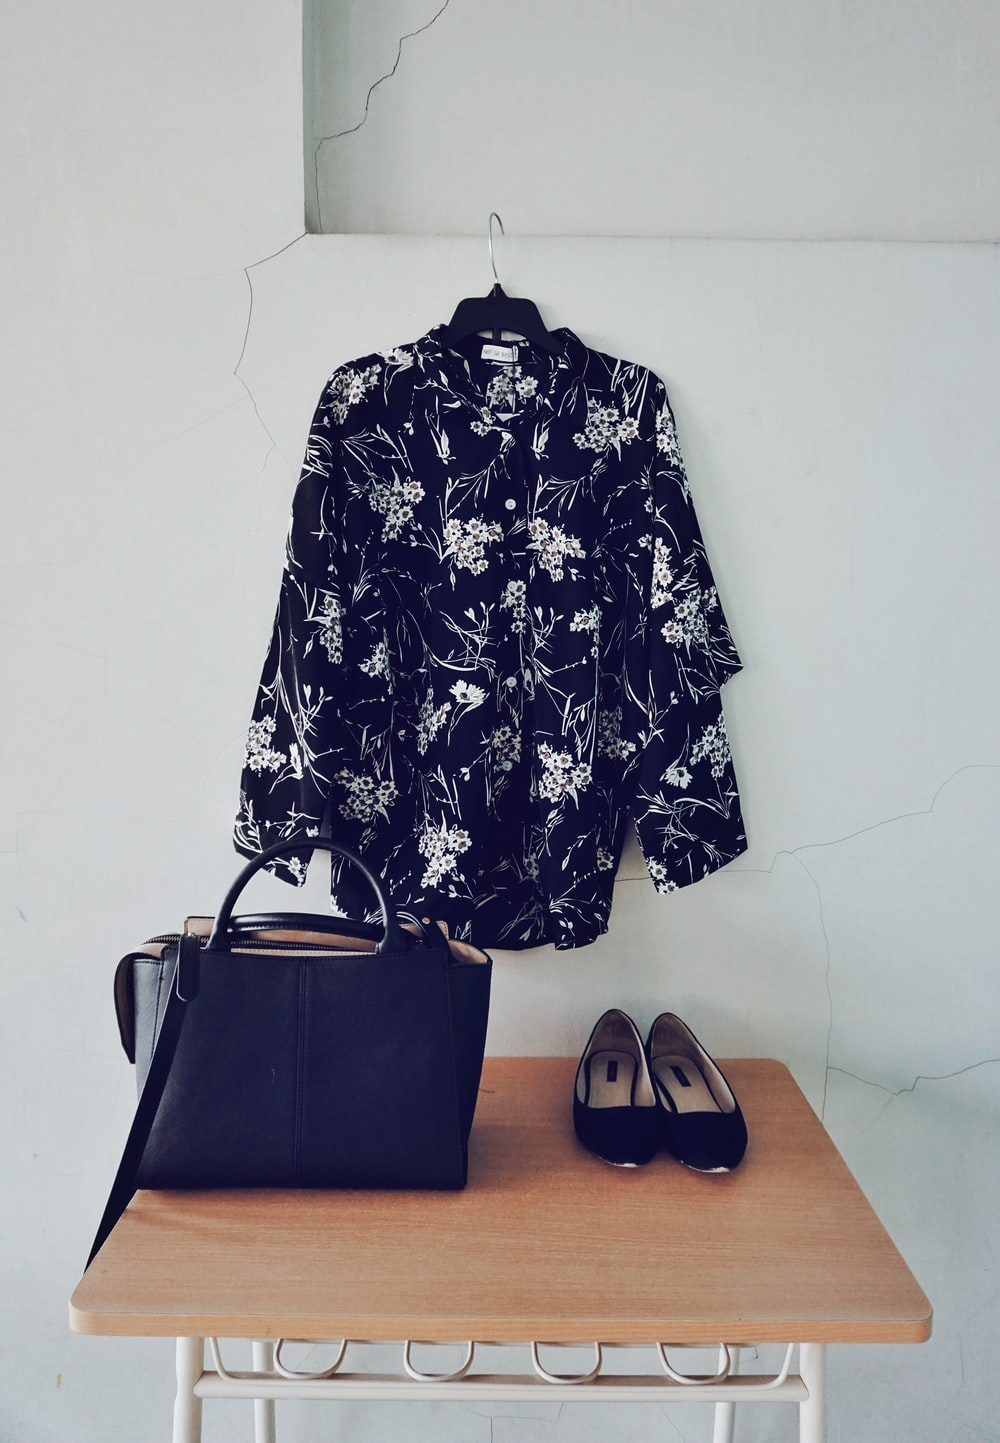 black and white floral sport shirt hanging beside black leather 2-way tote bag and ballet flats